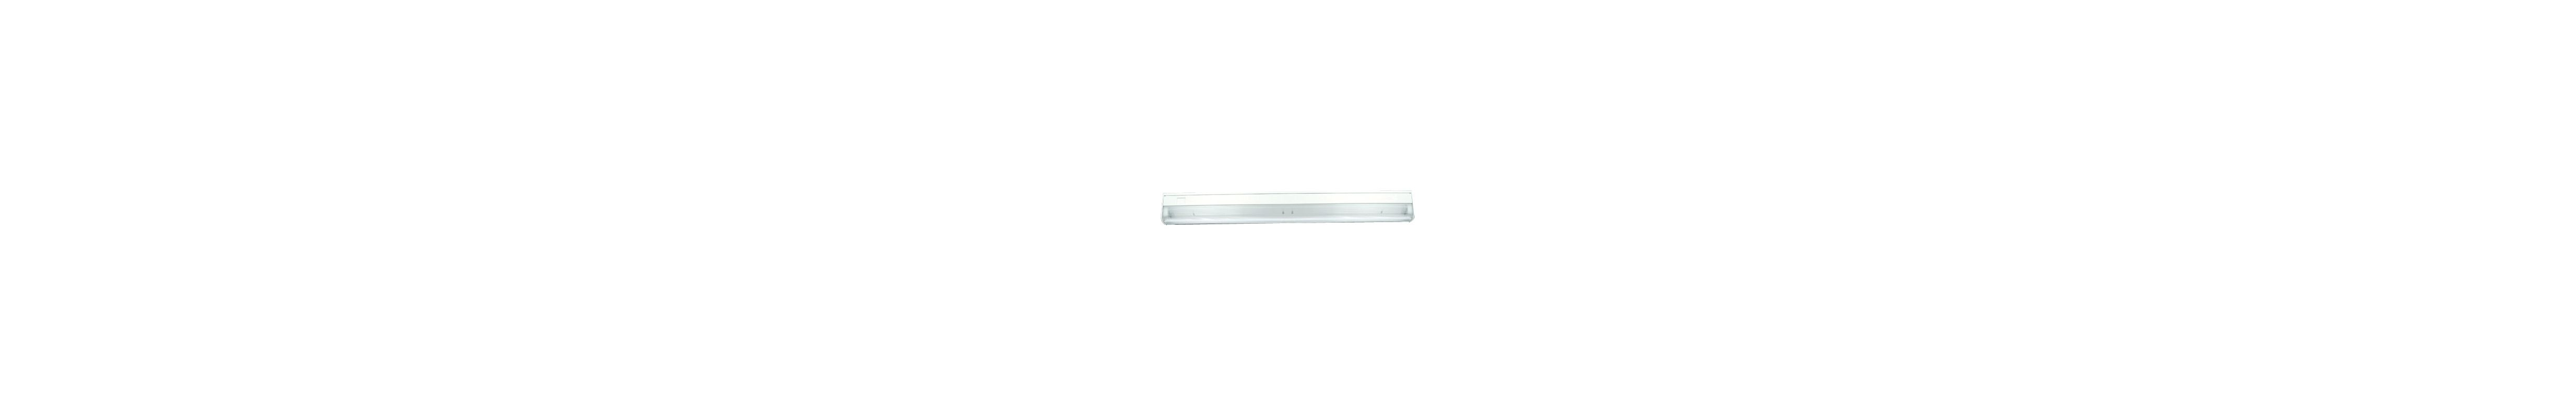 "Elco EUB21EL 21.25"" Miniature Fluorescent Undercabinet Lights with"